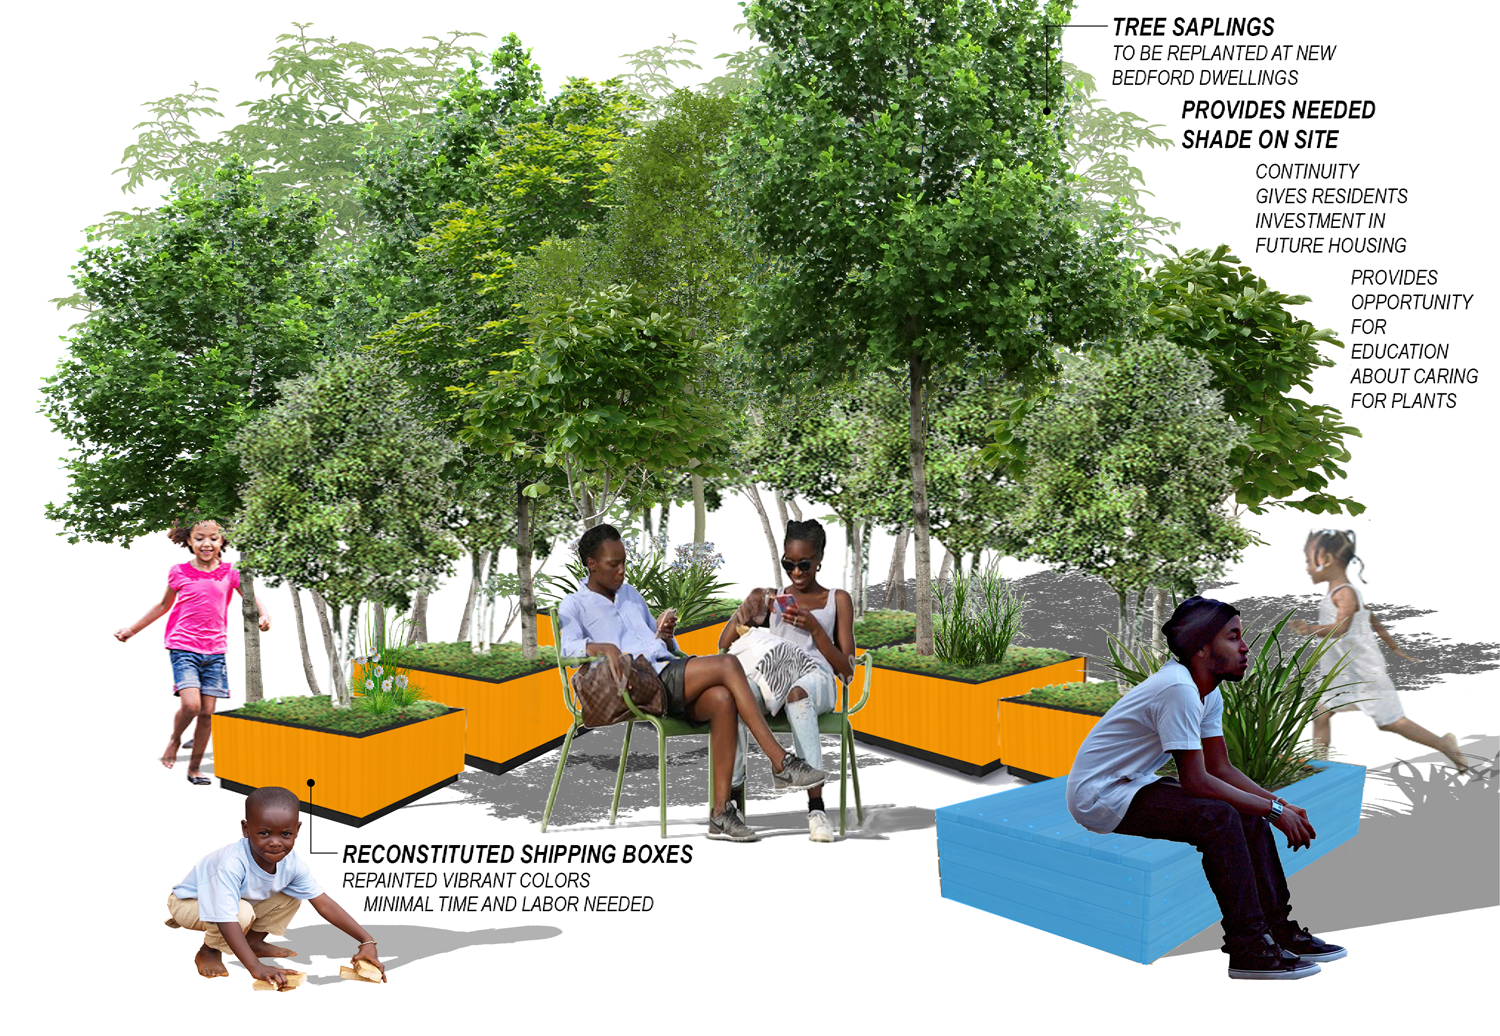 Image describing the proposed use of tree saplings to provide much-needed shade on the site and serve as a long-term investment in the neighborhood, as the saplings would be replanted as new housing develops.